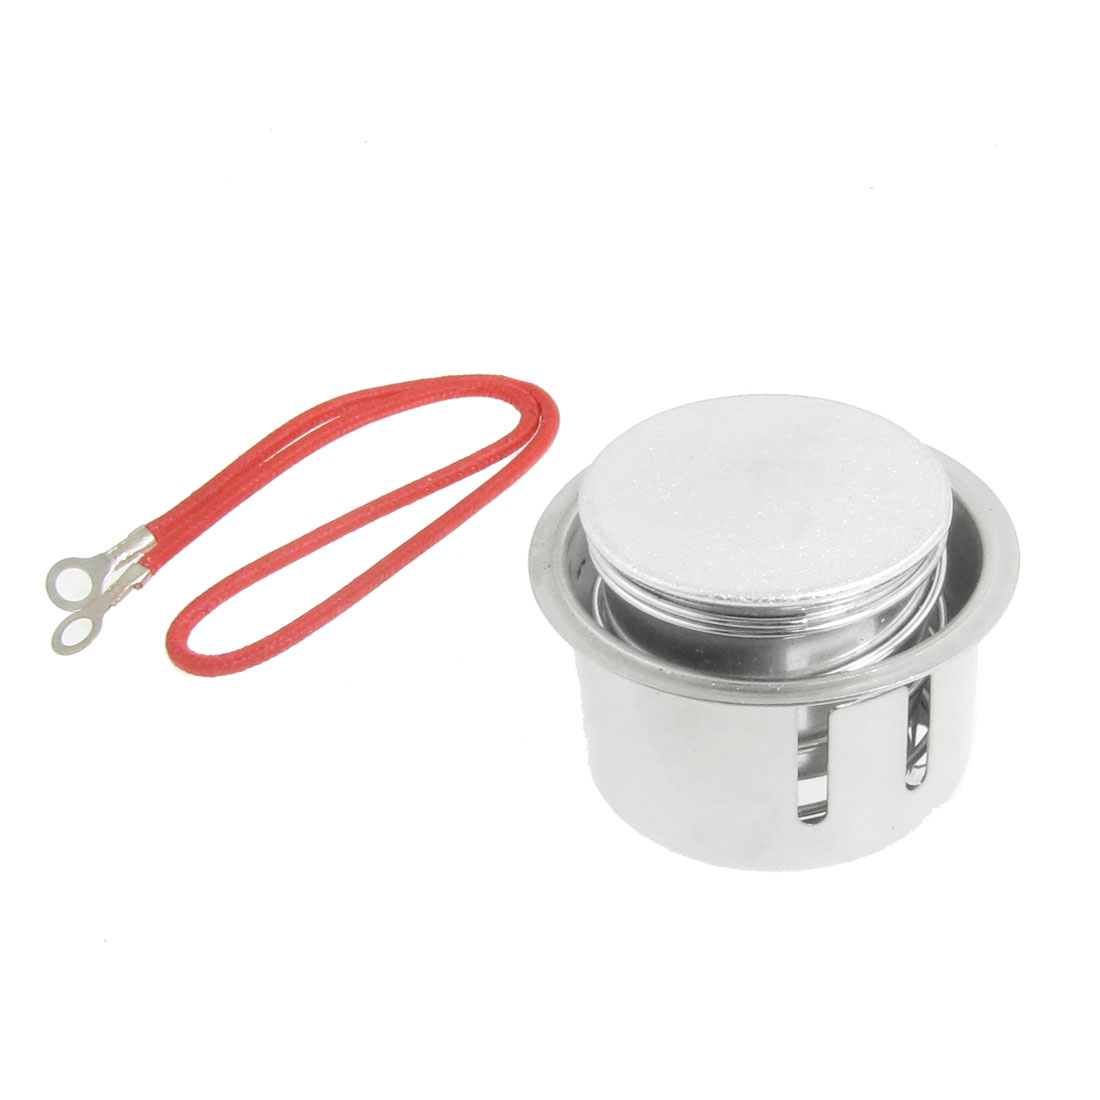 Home Kitchen Electric Rice Cooker Metal Magnetic Center Temperature Sensor